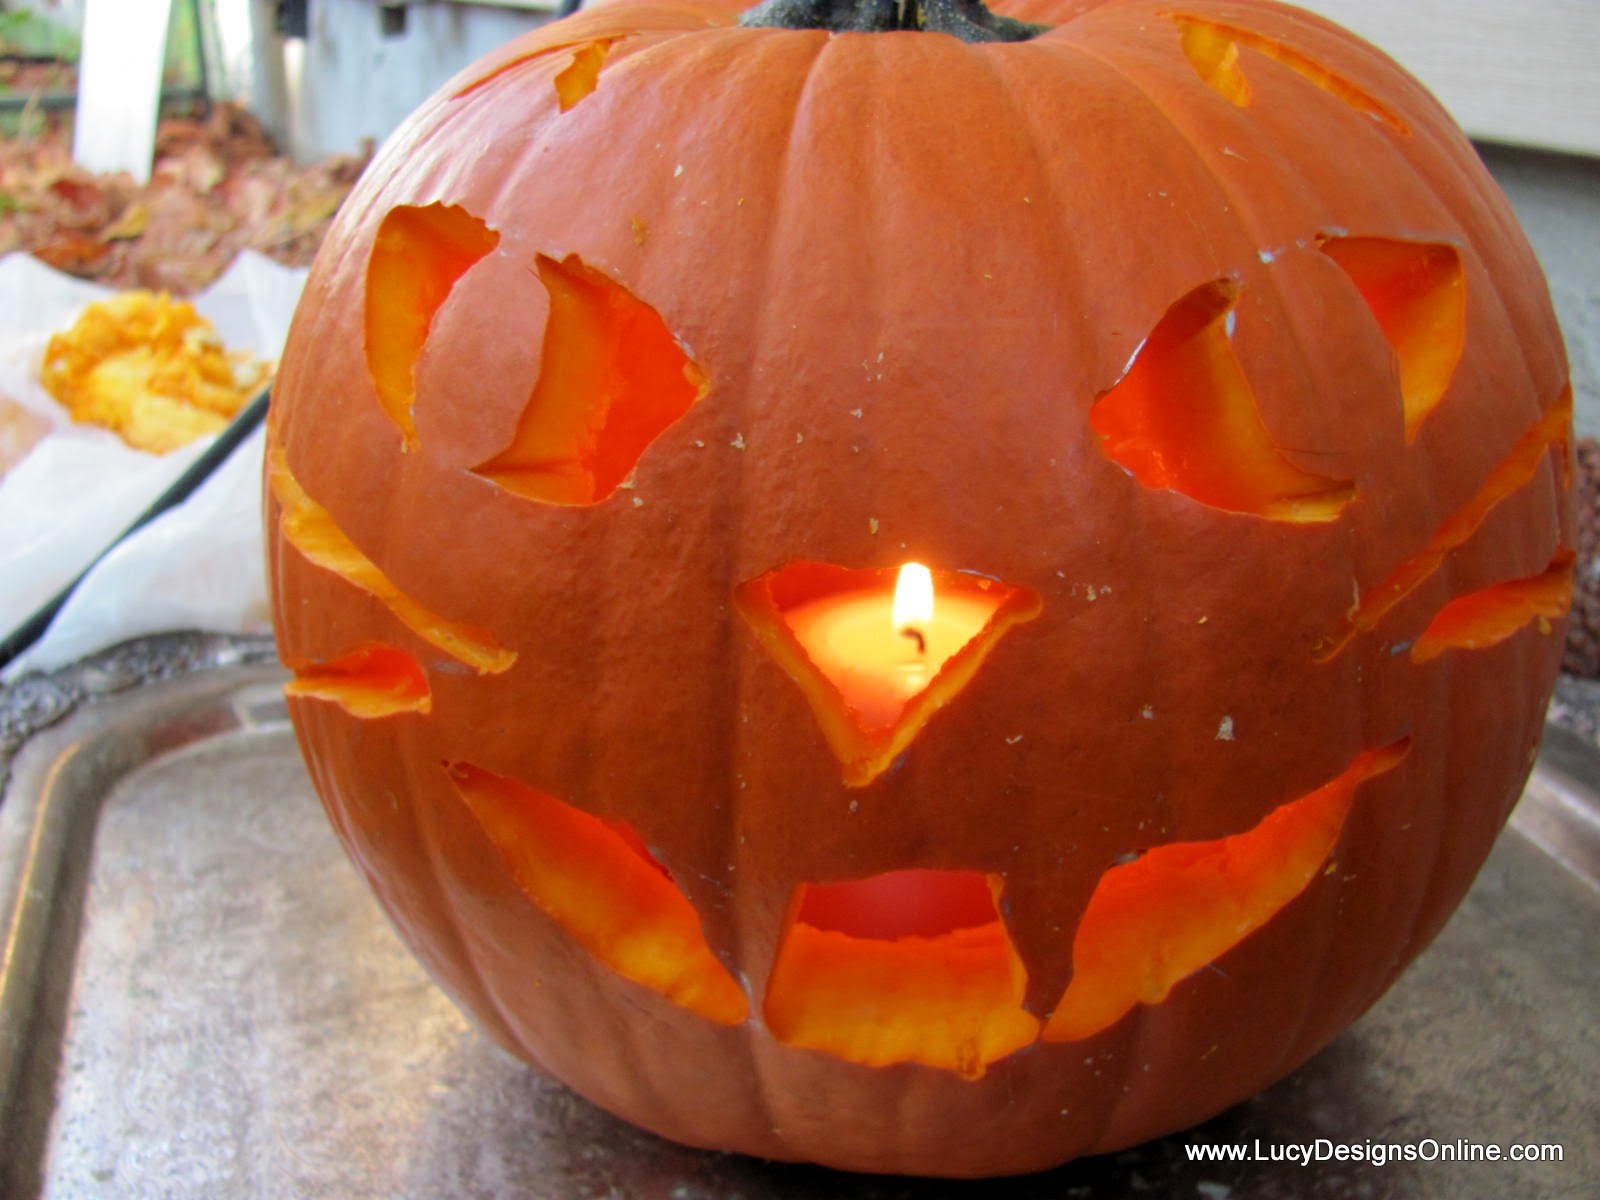 Cat Face Pumpkin Quick And Easy Carving With Rotozip Power Tool Lucy Designs